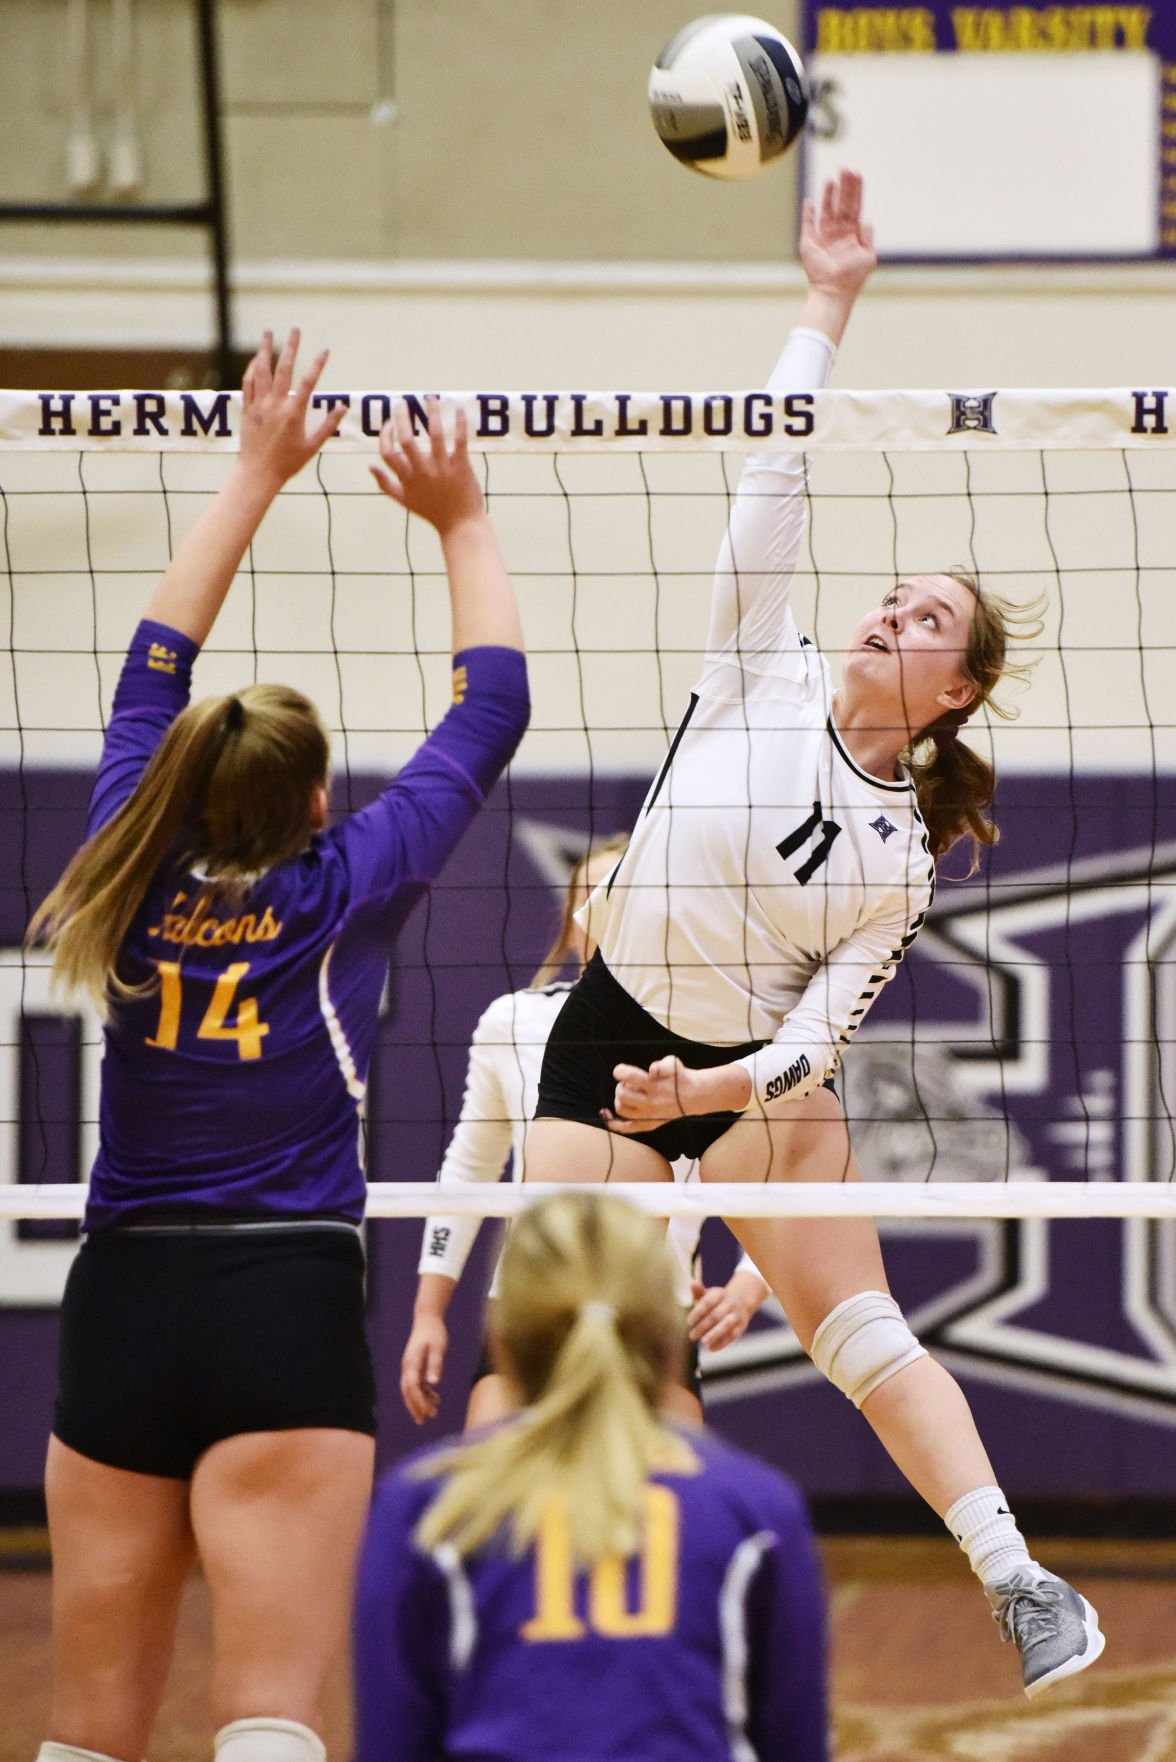 Hanford holds off Hermiston in MCC play